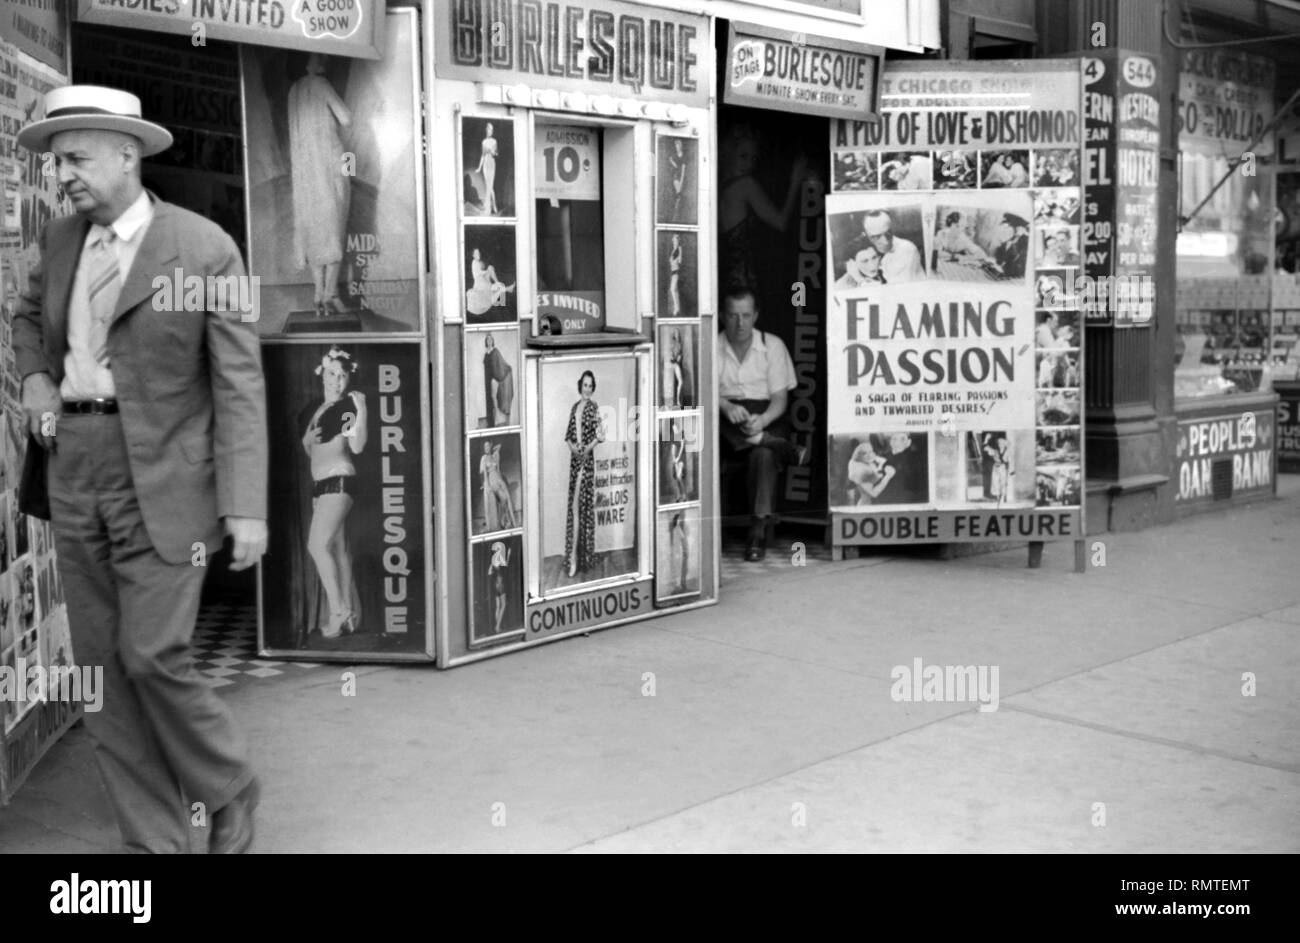 Burlesque Theater, South State Street, Chicago, Illinois, USA, John Vachon, Farm Security Administration, July 1941 - Stock Image